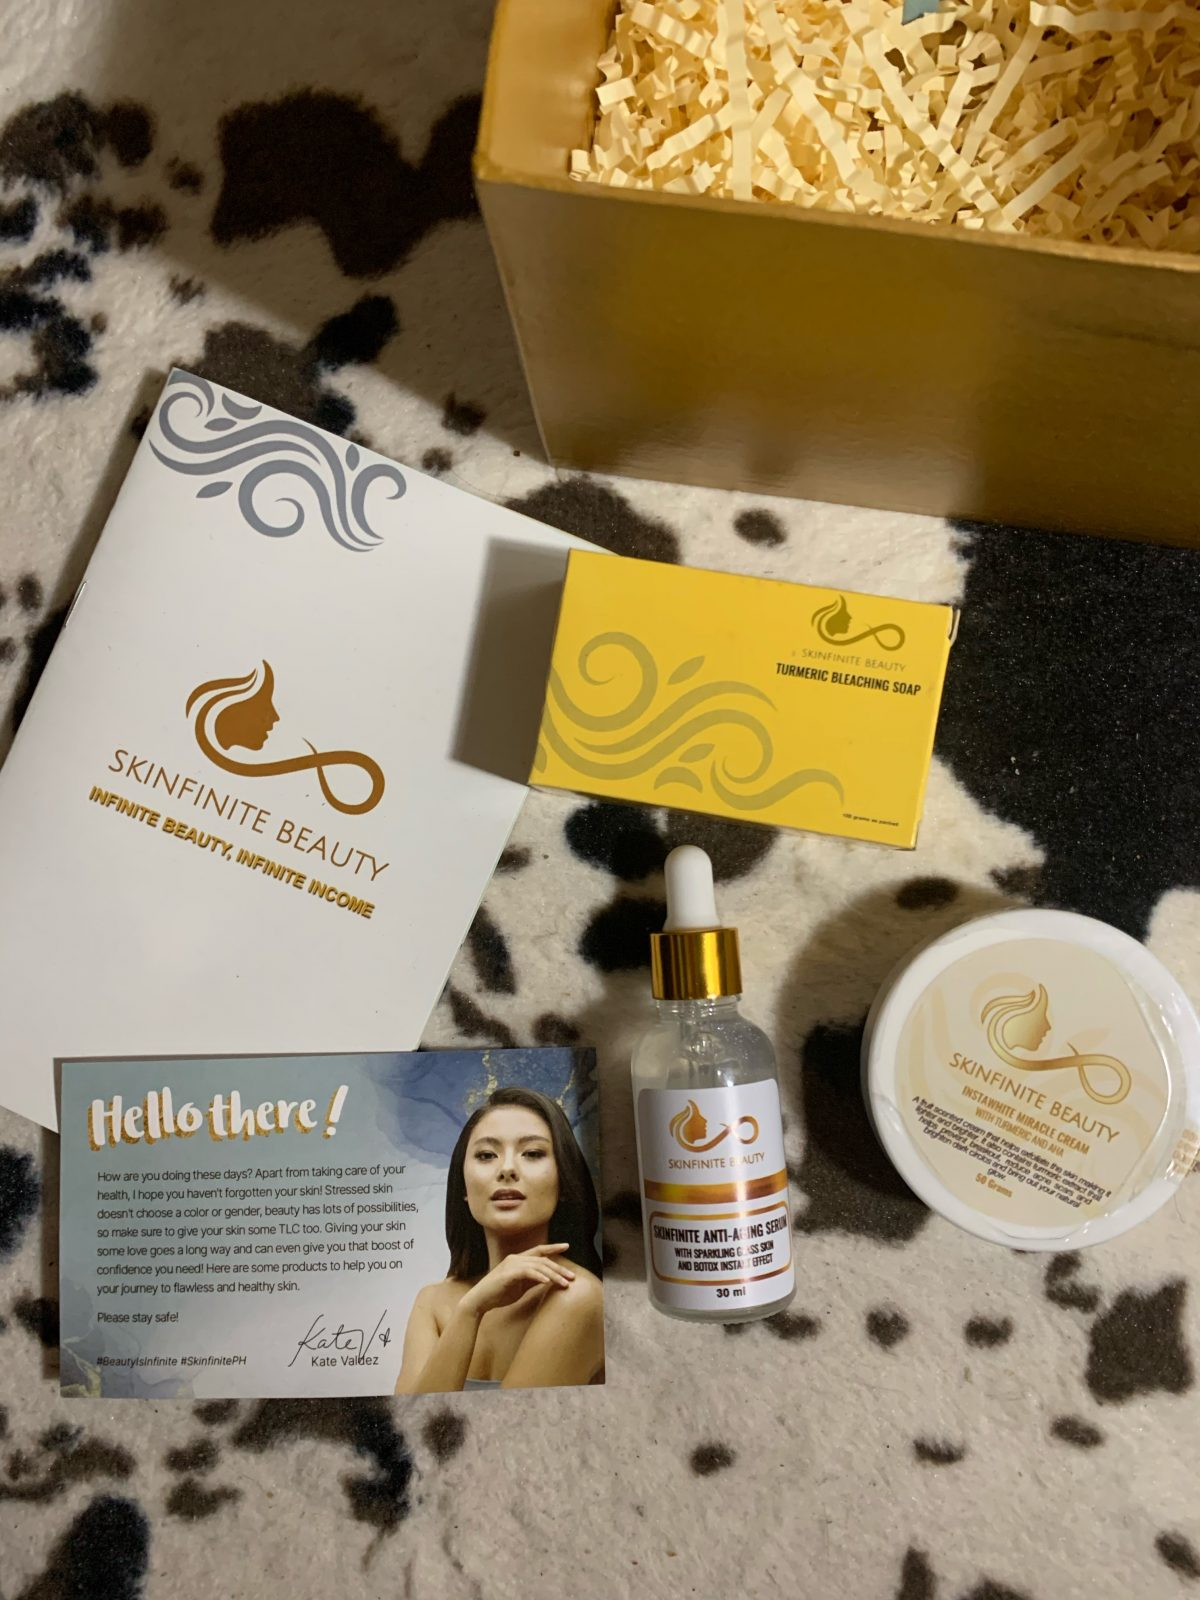 Skinfinite Beauty Review